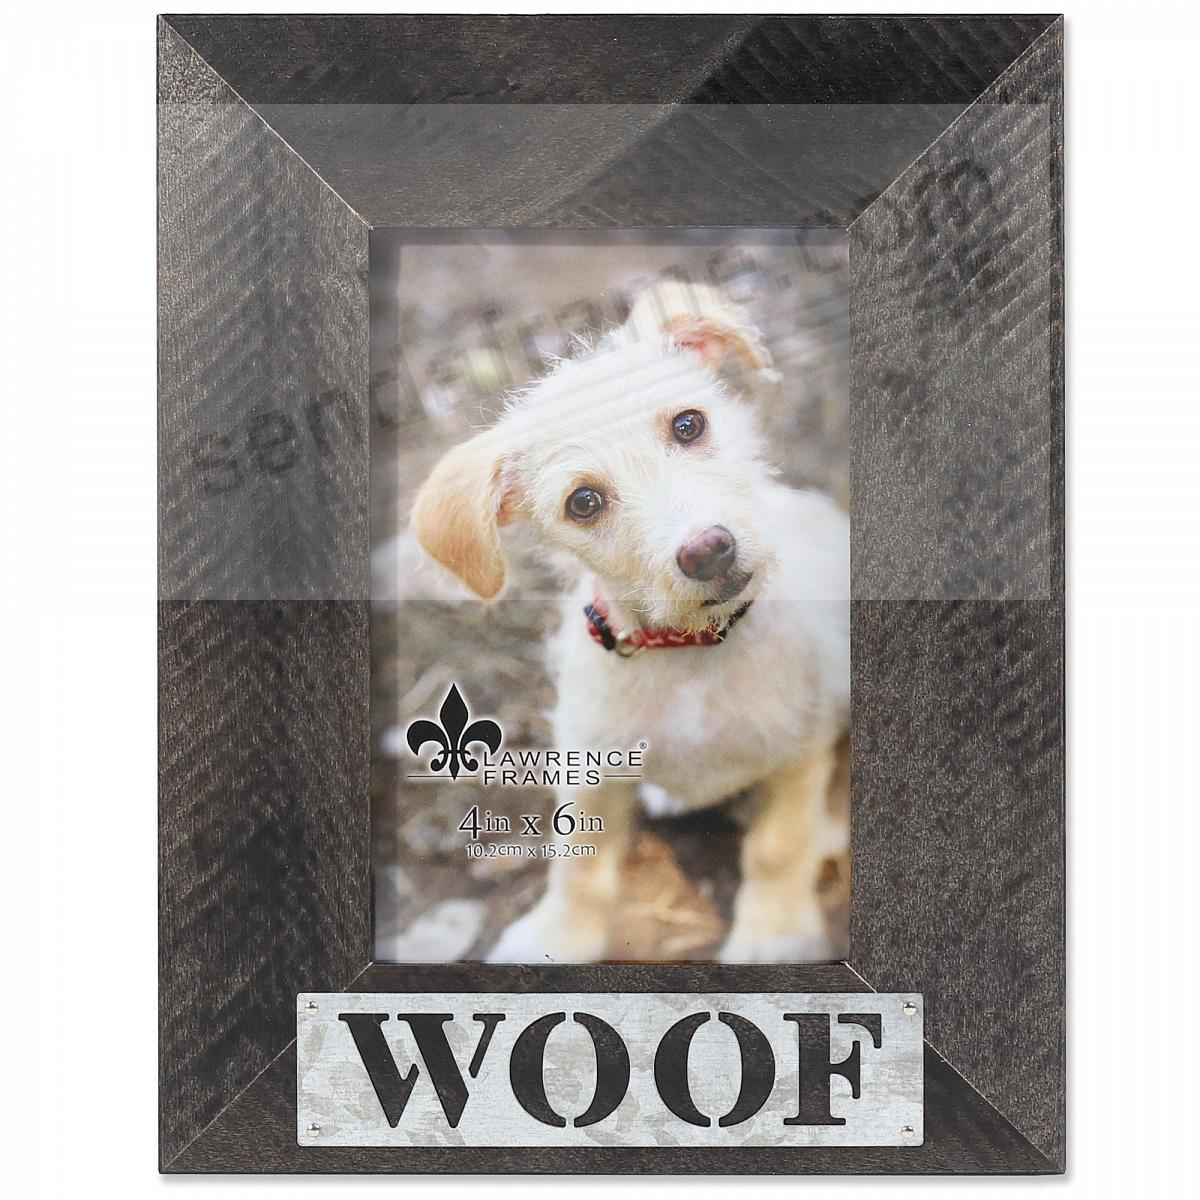 Black Weathered Frame with Galvanized Metallic WOOF Plaque